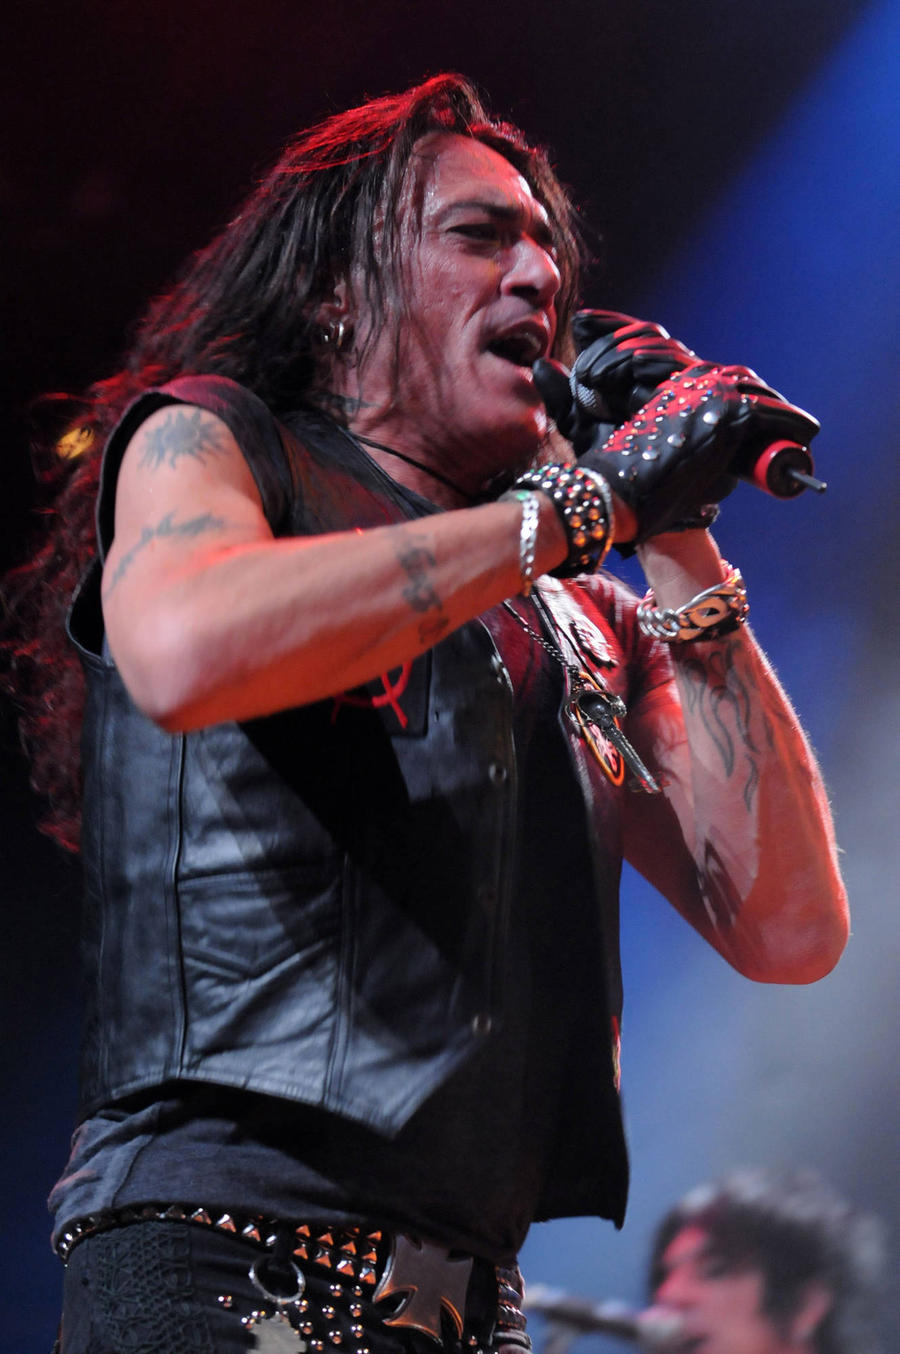 Stephen Pearcy Offers Ratt Fans Hope Of Another Reunion